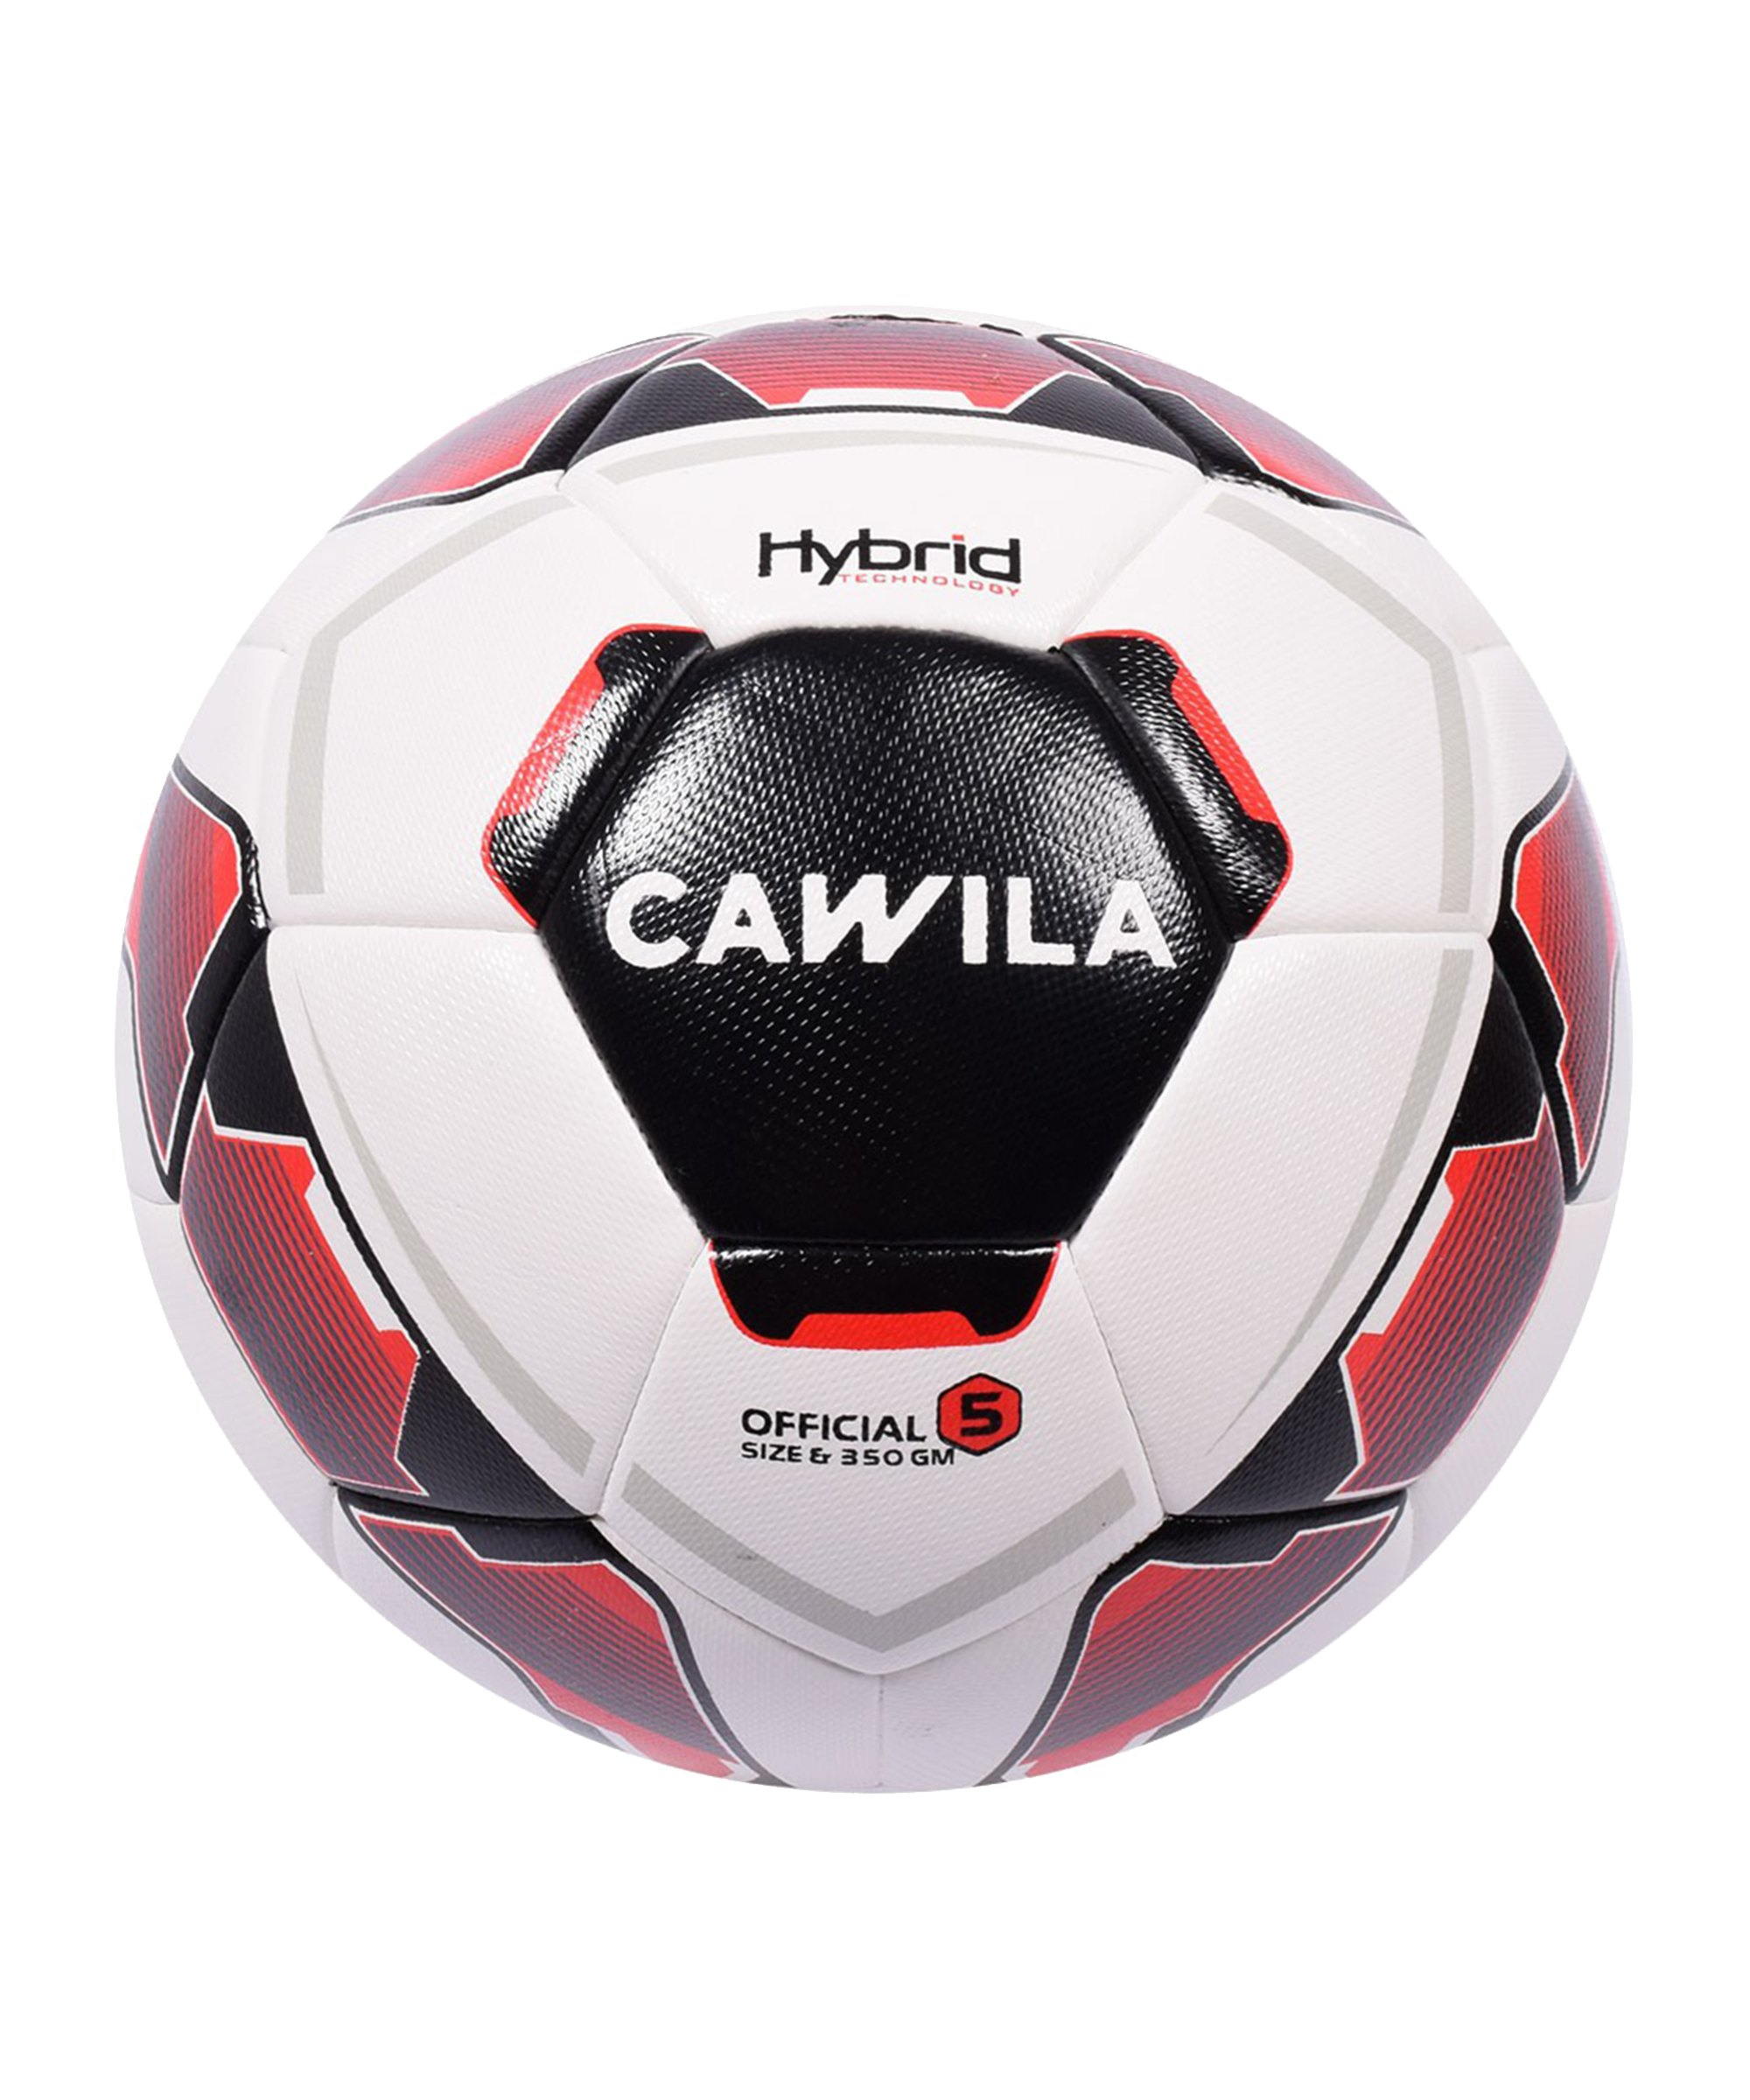 Cawila Fussball MISSION HYBRID LITE 350 350g 5 - weiss